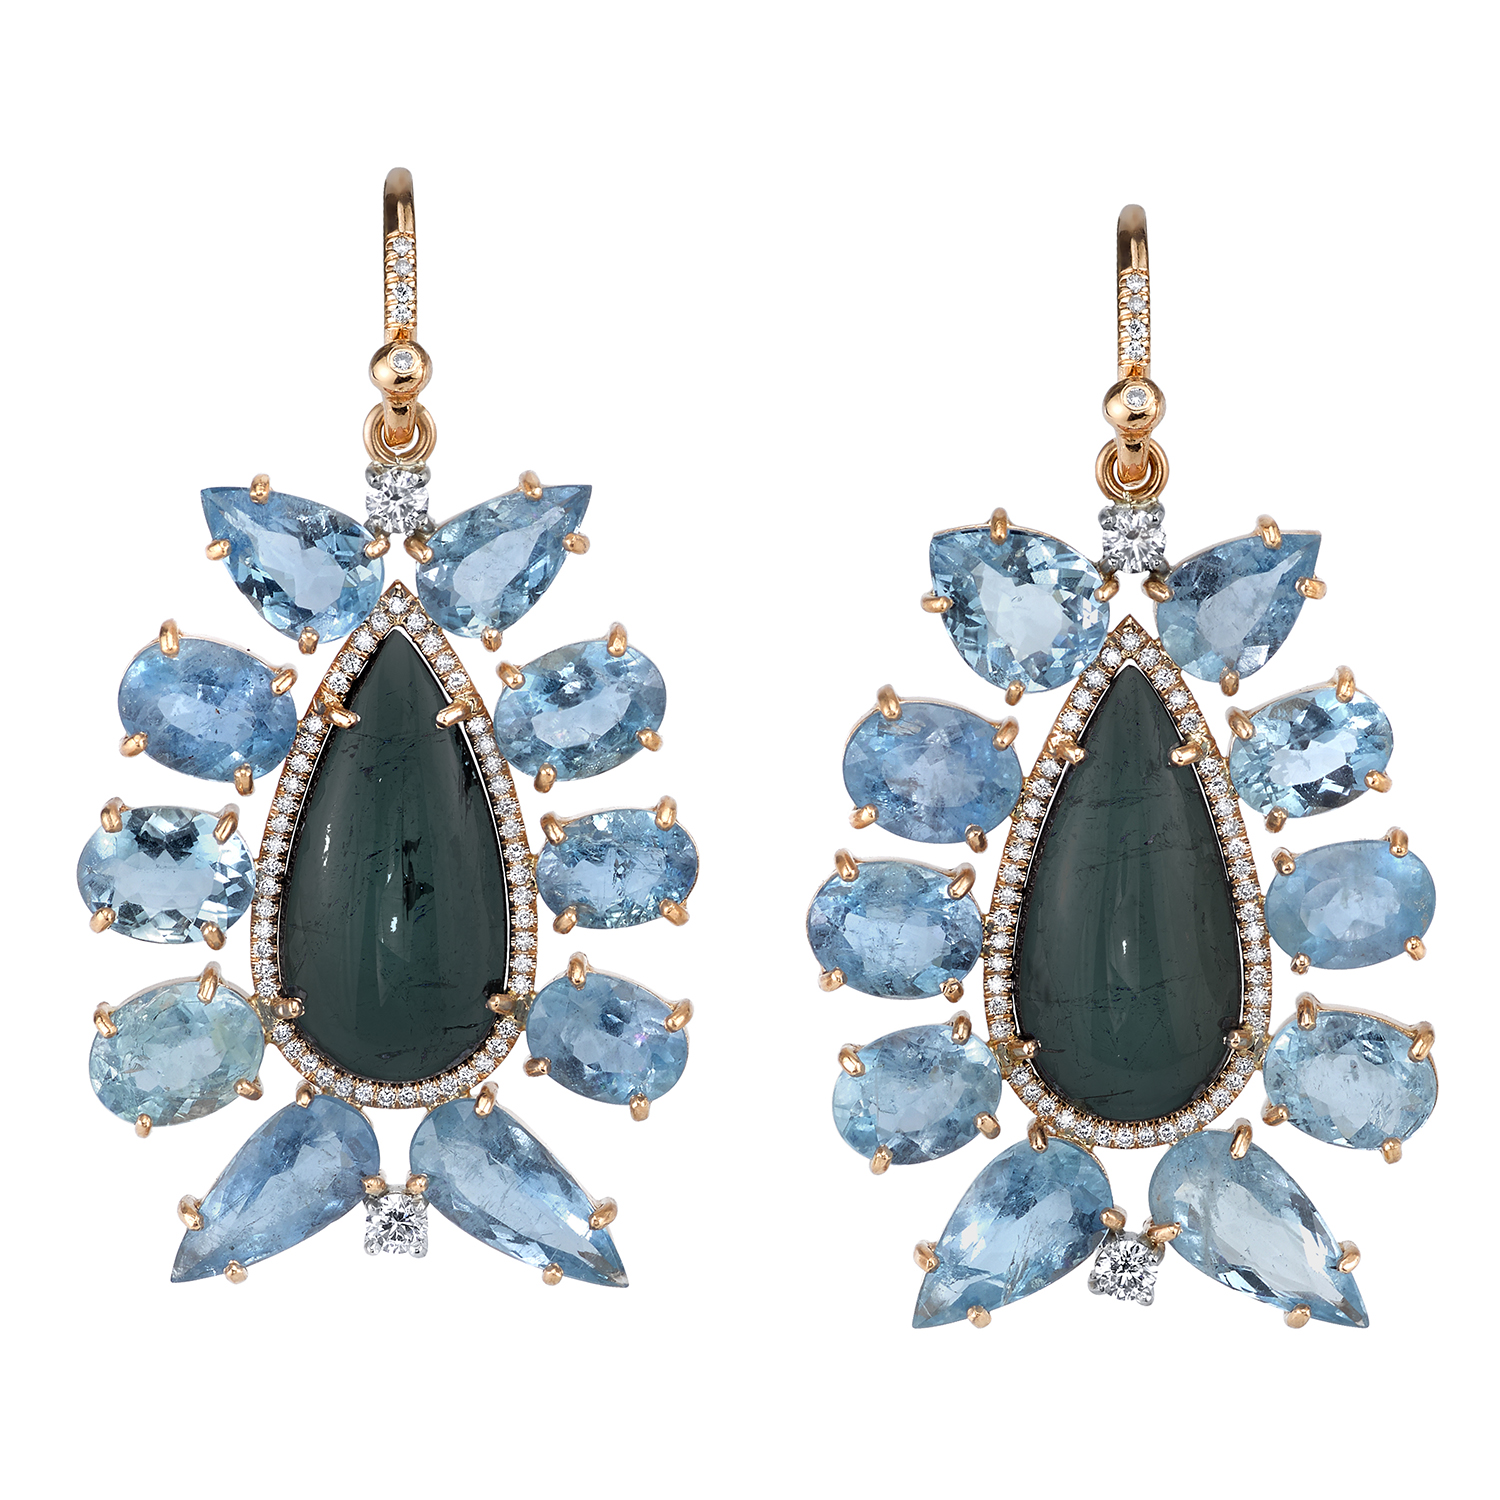 Irene Neuwirth One of a Kind Earrings with Full Cut Diamonds, Fine Aquamarine, Indicolite Tourmaline, and Diamond Pave, price upon request, Marissa Collections, 1167 3rd St S, Naples, FL 34102 (239) 263-4333 (Photo: Courtesy Irene Neuwirth).